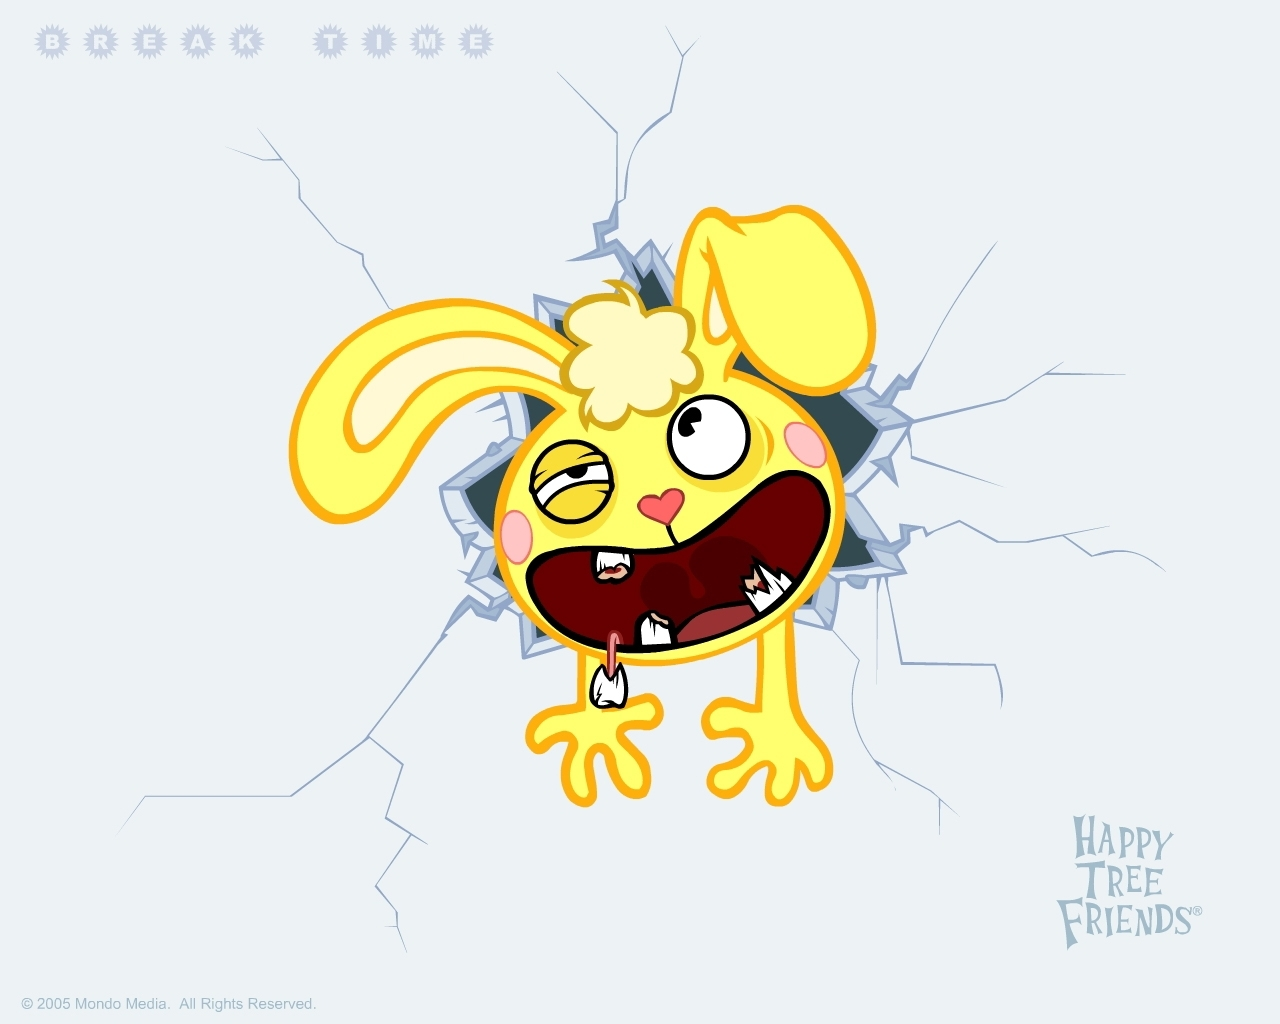 happy tree friends wallpaper and background image | 1280x1024 | id